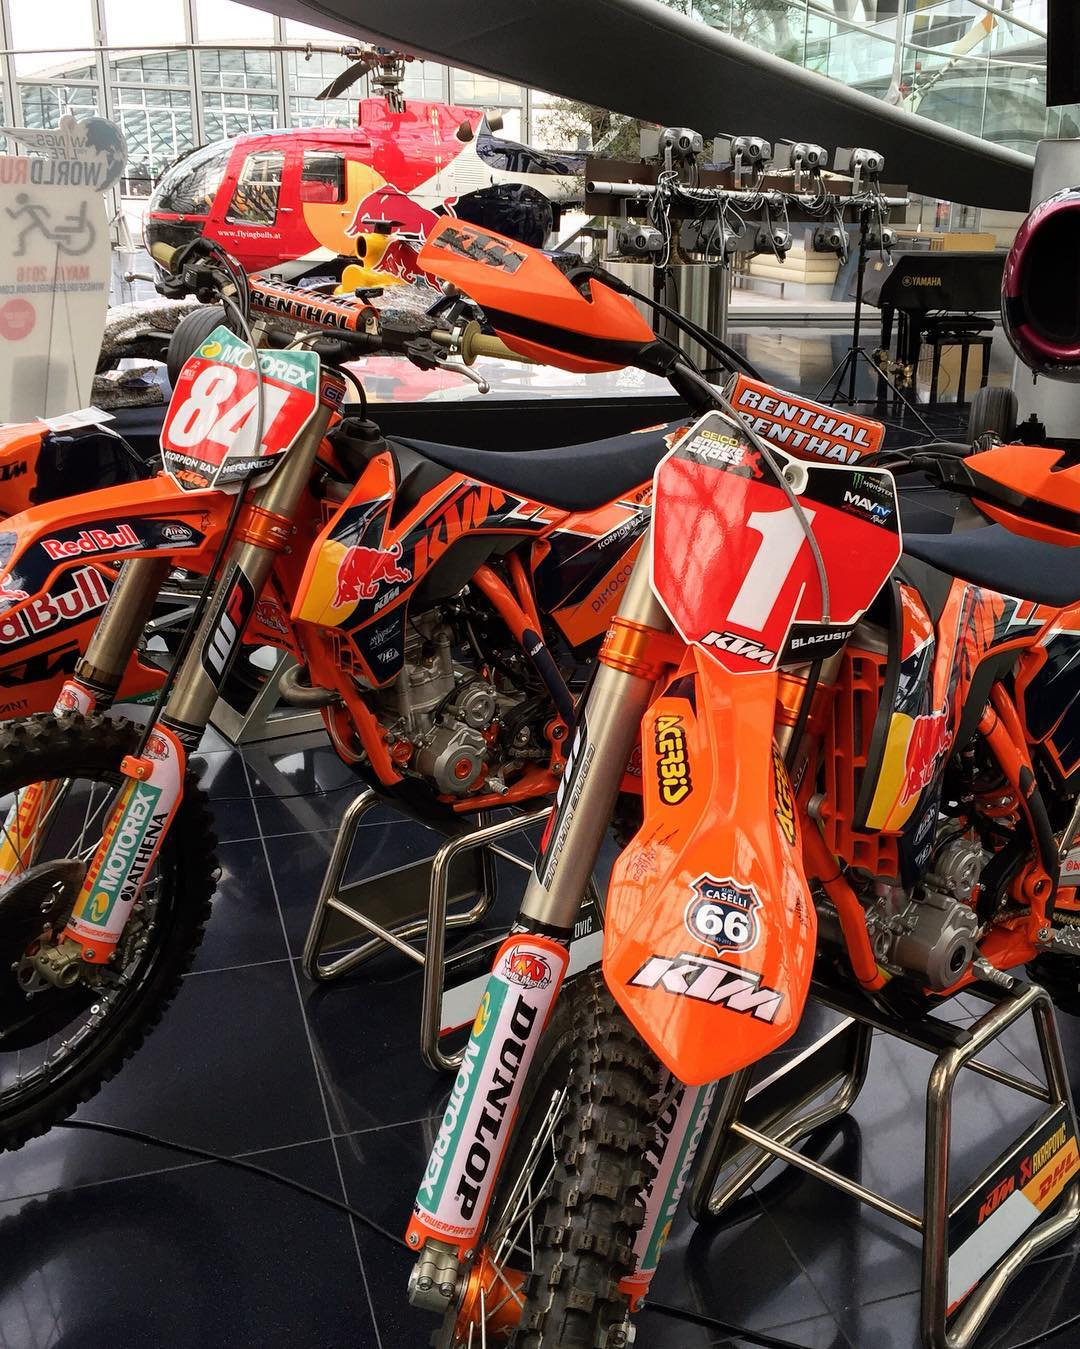 Quick trip to Red Bull's Hangar 7 today. Cool to see these 2 championship winning bikes there which I was lucky enough to get to do the graphic design for. chrome highlights and orange to red gradients to symbolise them winning so much at that time!  #KTM #de_portfolio